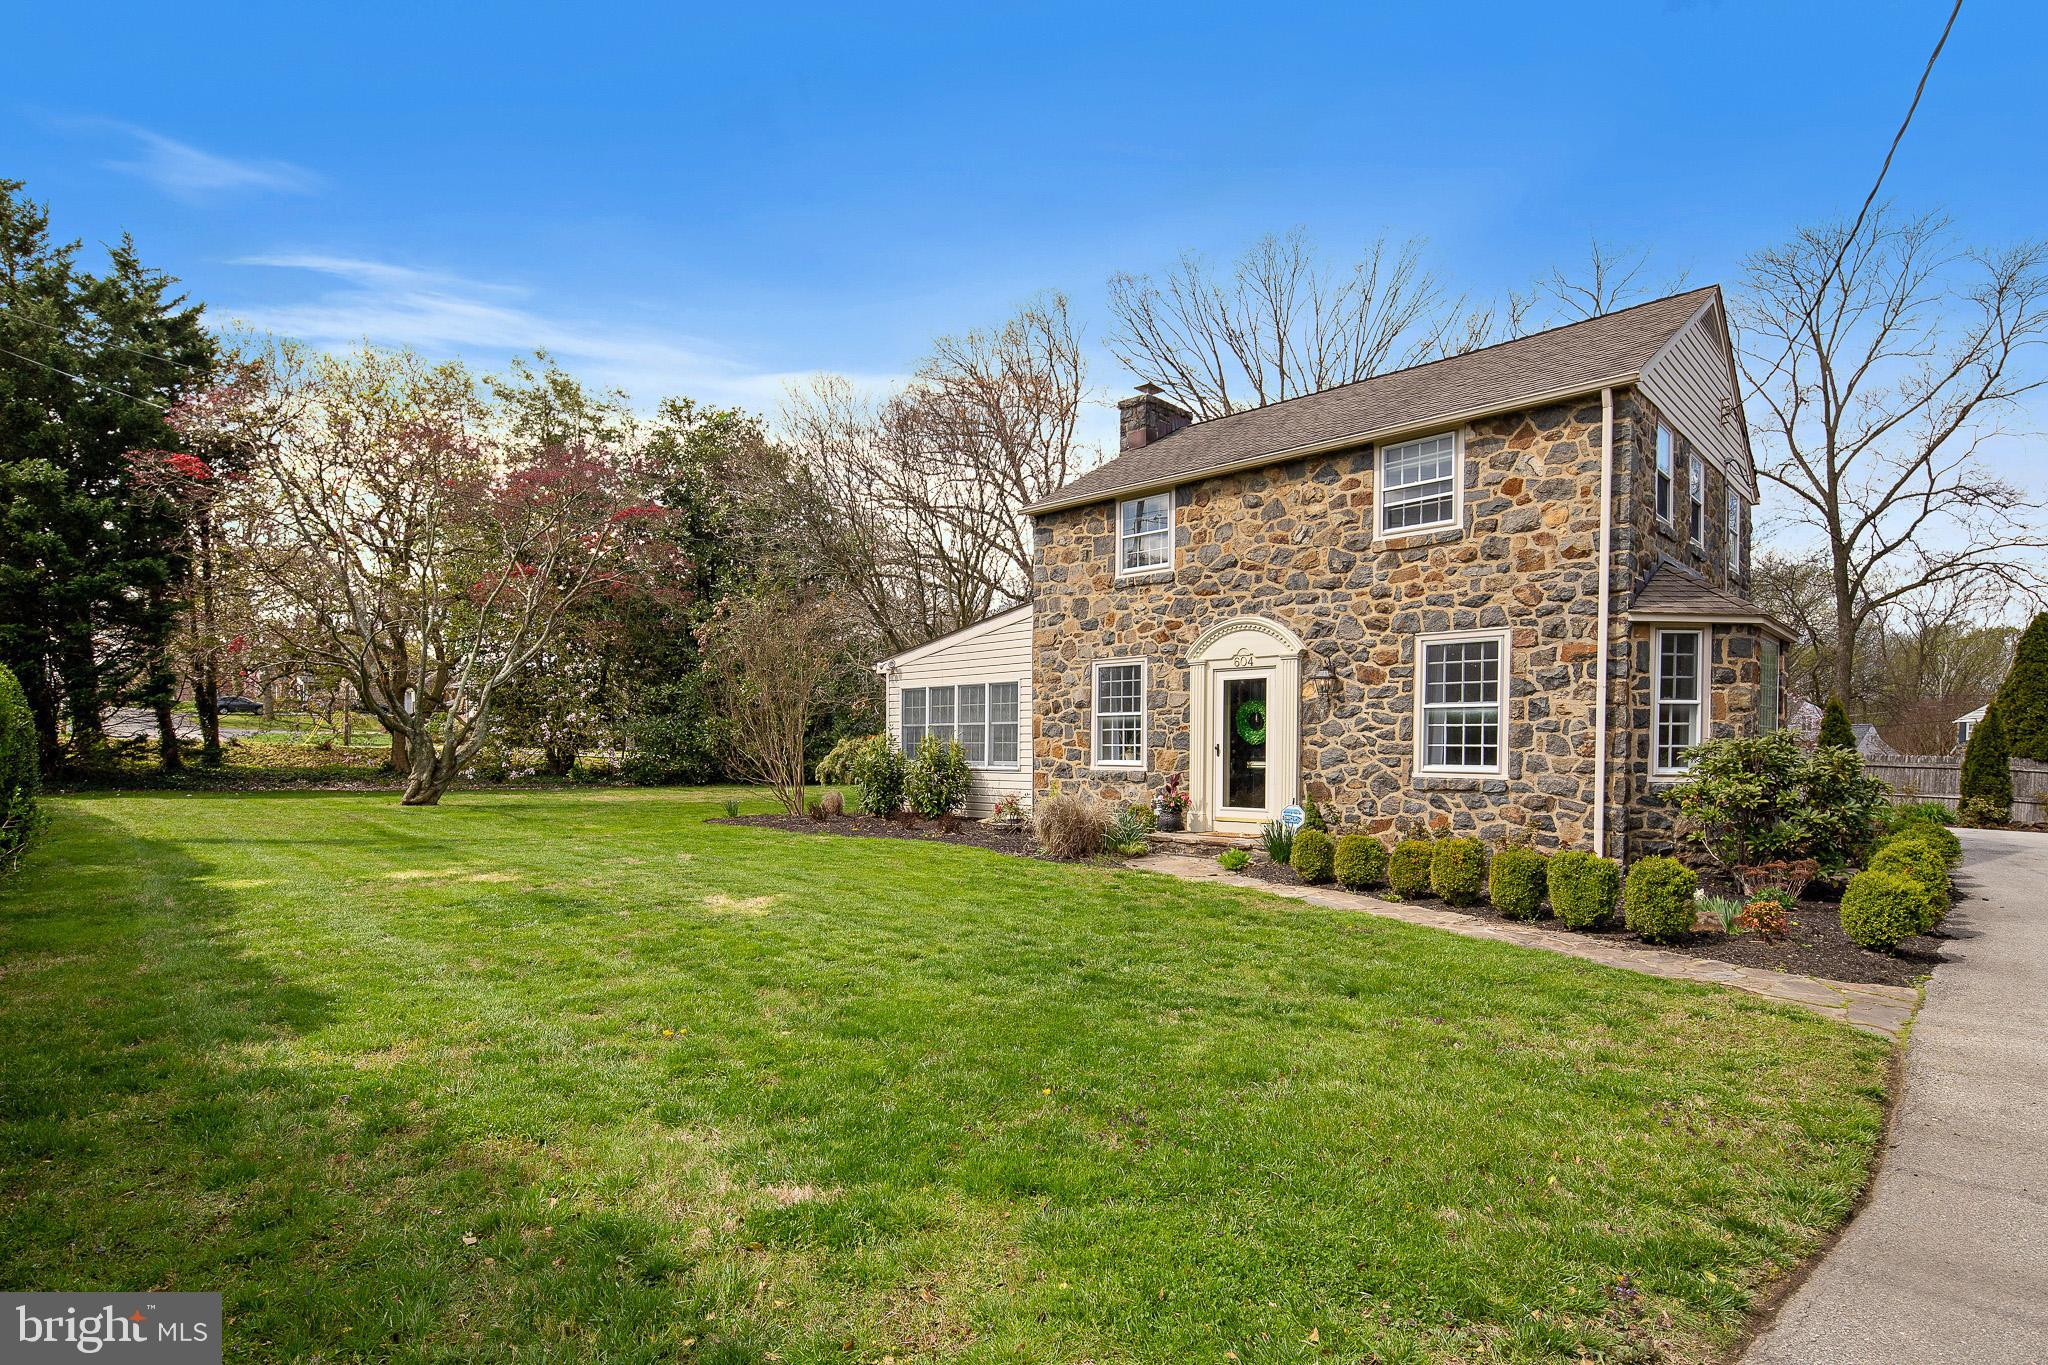 """Please view the 360 virtual tour before scheduling a showing.  https://my.matterport.com/show/?m=cAkTszTh4uc&mls=1.  If you ever wanted character in a home, this is it! This beautiful stone colonial sits on a double lot, which provides a wonderful yard off of the deck, with lots of privacy plantings. The interior is brimming with the warmth of honest materials, like hardwood floors, a stone fireplace, granite, stainless and 42"""" cherry cabinets, great woodwork and good old fashioned real plaster. The sun room is exceptional with its high ceiling, abundant windows, skylights and stone wall, accessing the flowing deck. The beautiful formal dining room lives large with its expansive bay window. Off of the kitchen is the study/breakfast room, also filled with light due to the wall of glass looking out on the yard and deck, and it leads to the over-sized garage.   Alert! This is the home that can handle expansion! The stone garage offers an opportunity for a much larger home for someone with the vision. Recently converted to gas and split system AC. Perfectly located in a one street niche of stone homes that abut the Bringhurst Woods and the Greenway, it is just a hop to highways and access to everything."""